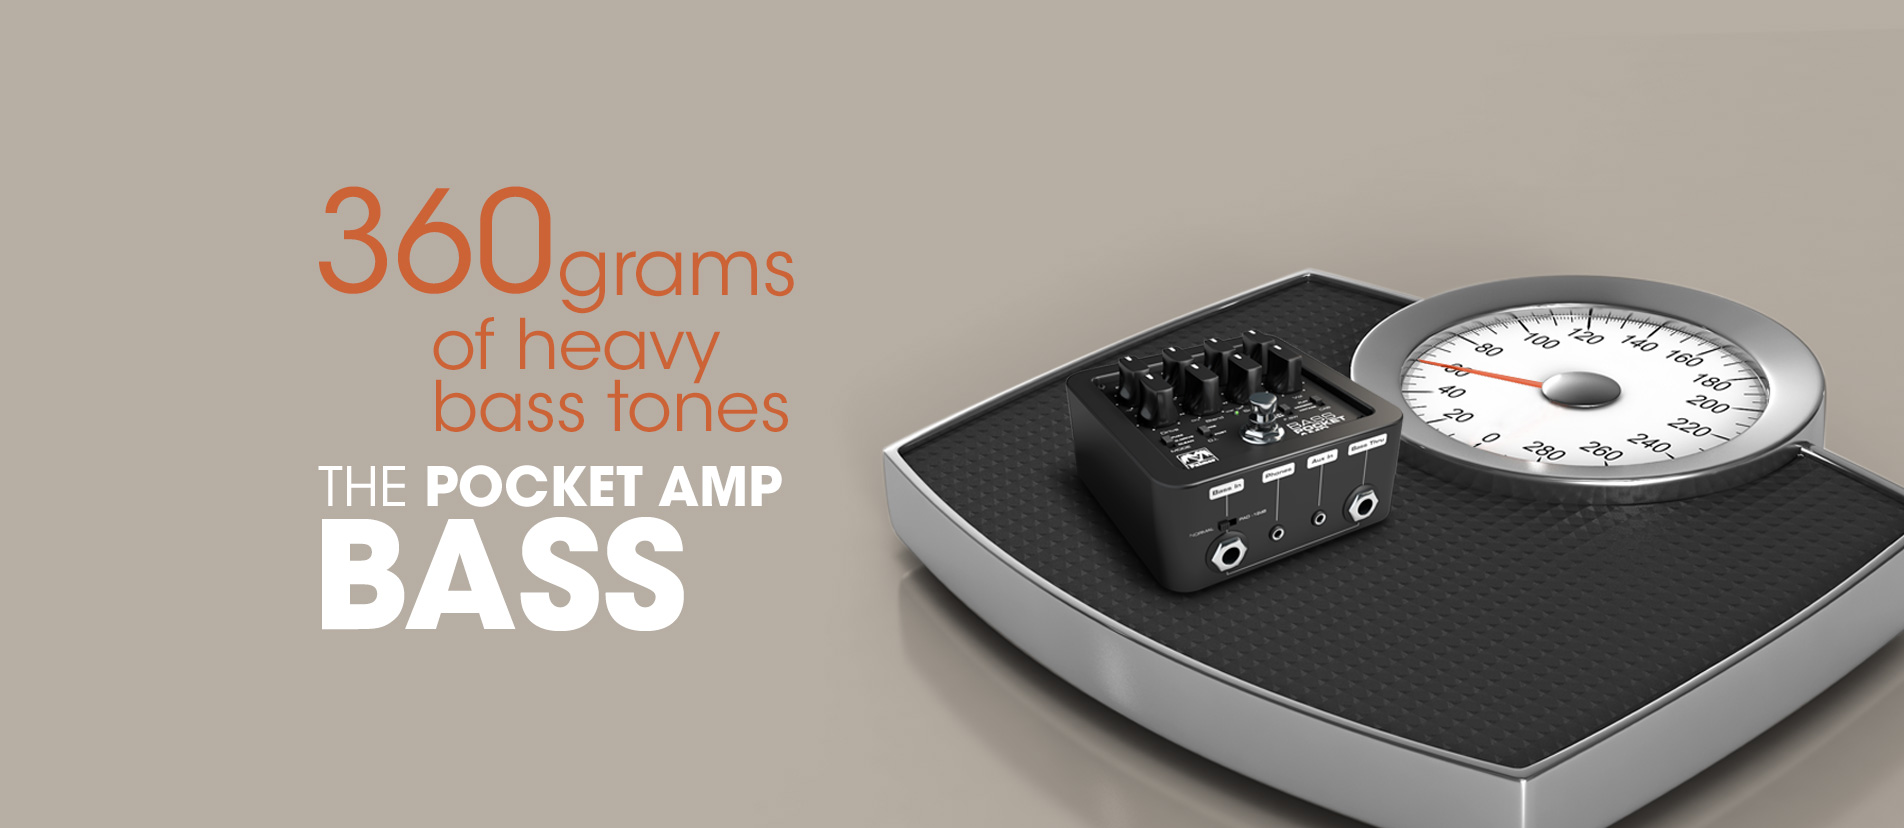 POCKET AMP BASS